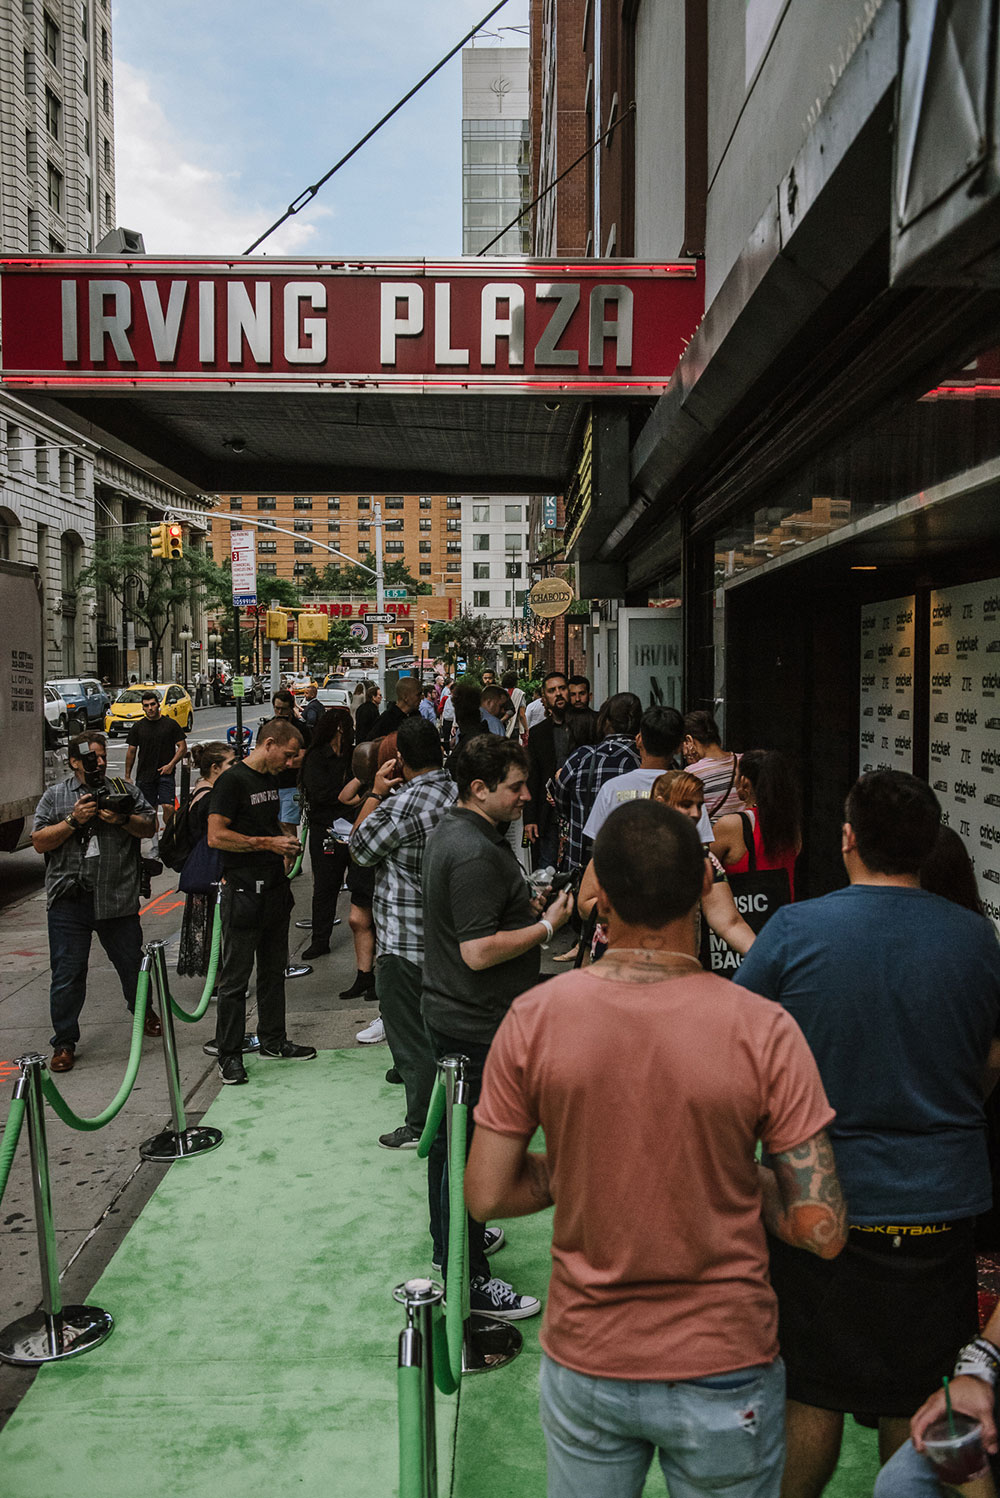 Customer event at Irving Plaza in New York, NY.